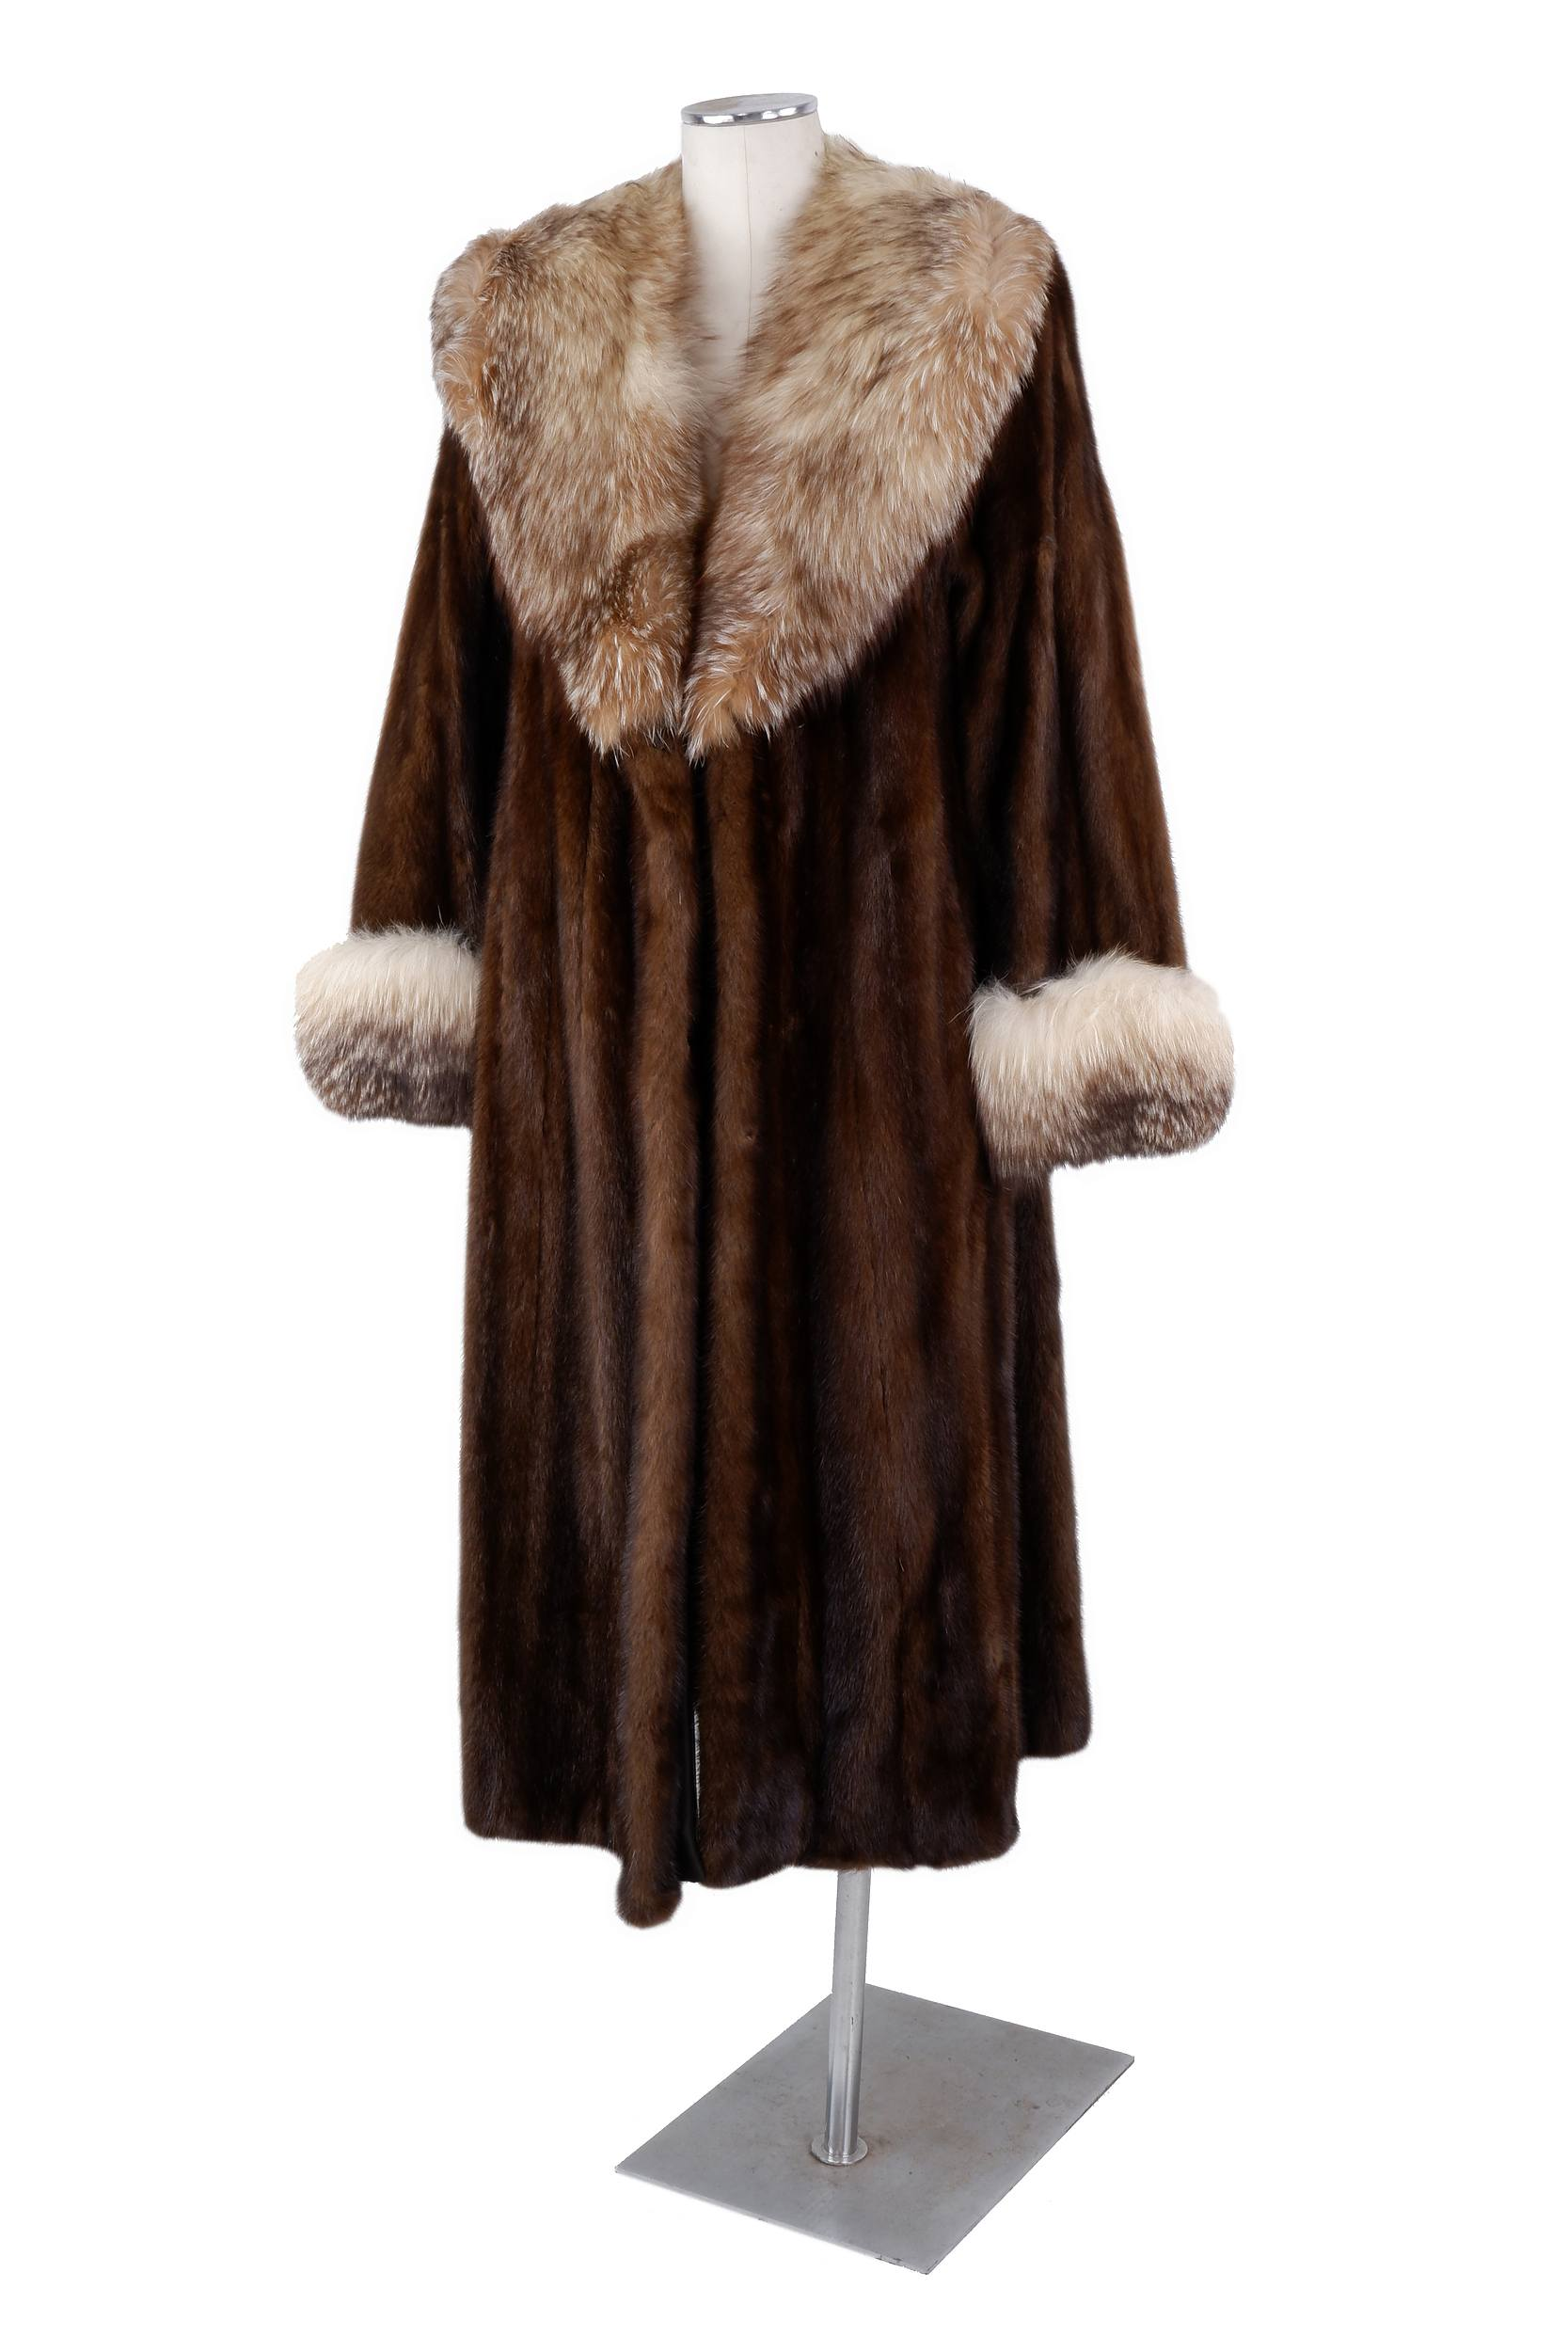 'Vintage Christian Dior Full Length Mink Coat with Snow Fox Collar and Cuffs'